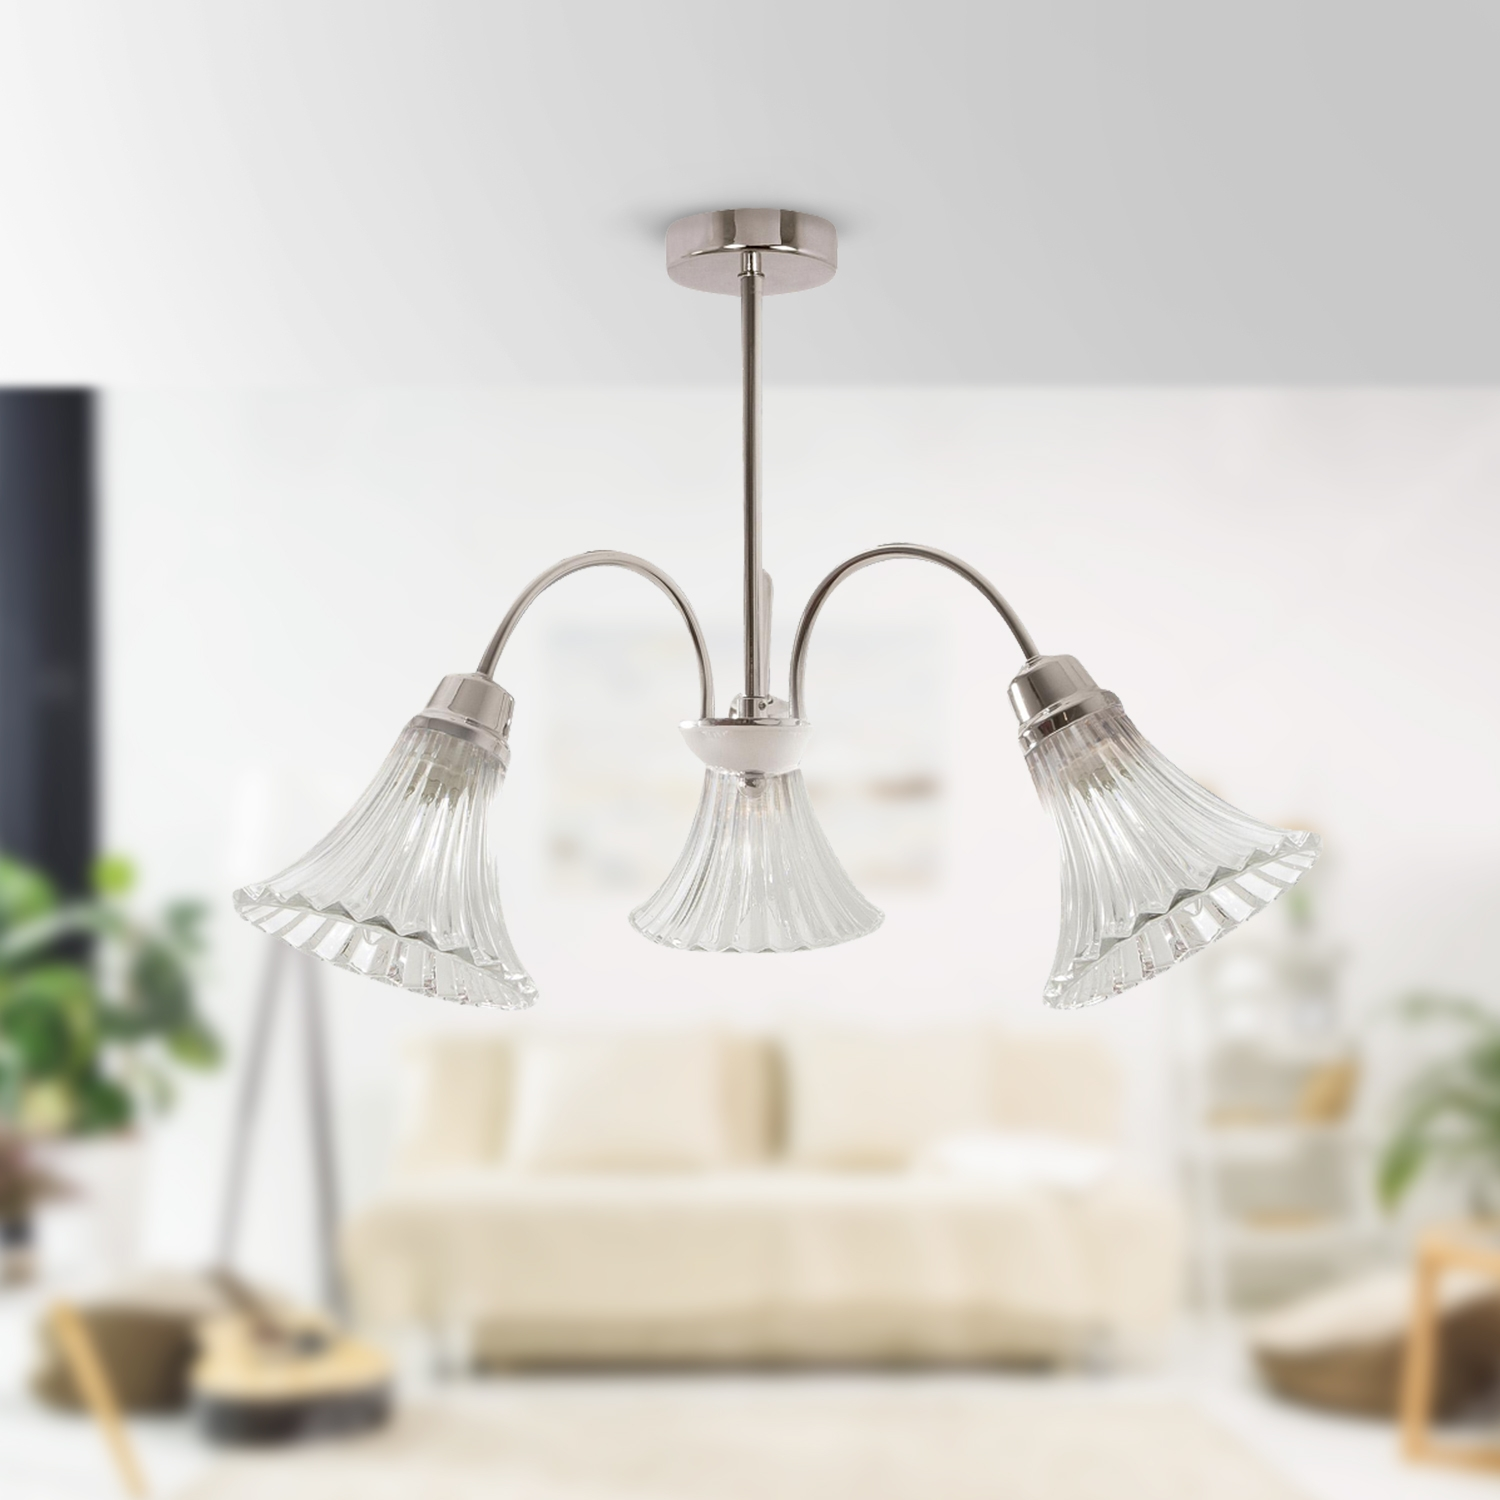 3 Bar Pendant Light Hanging Chrome Effect 3 Way Mounted: Modern Polished Chrome With Glass Shades 3 Way Ceiling